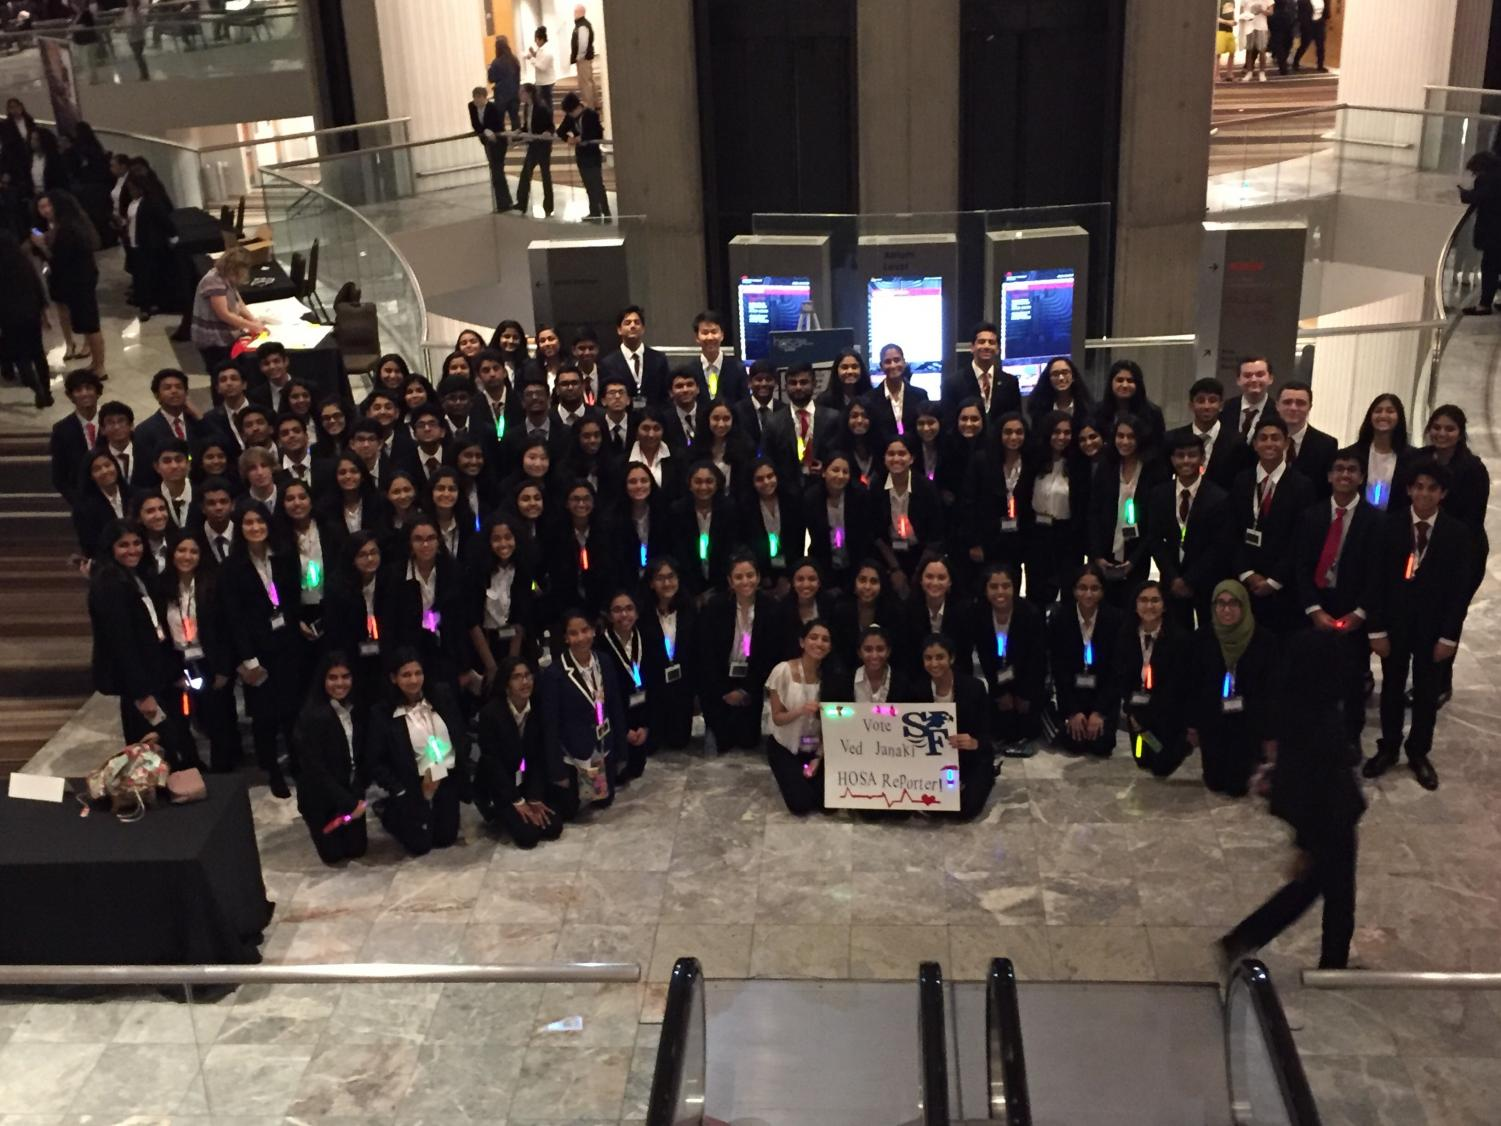 Future health professionals. HOSA members attended the the annual State Leadership Conference to follow their passion in medicine. Like past years, this conference has taken place in downtown Atlanta at the Atlanta Marriot Marquis.